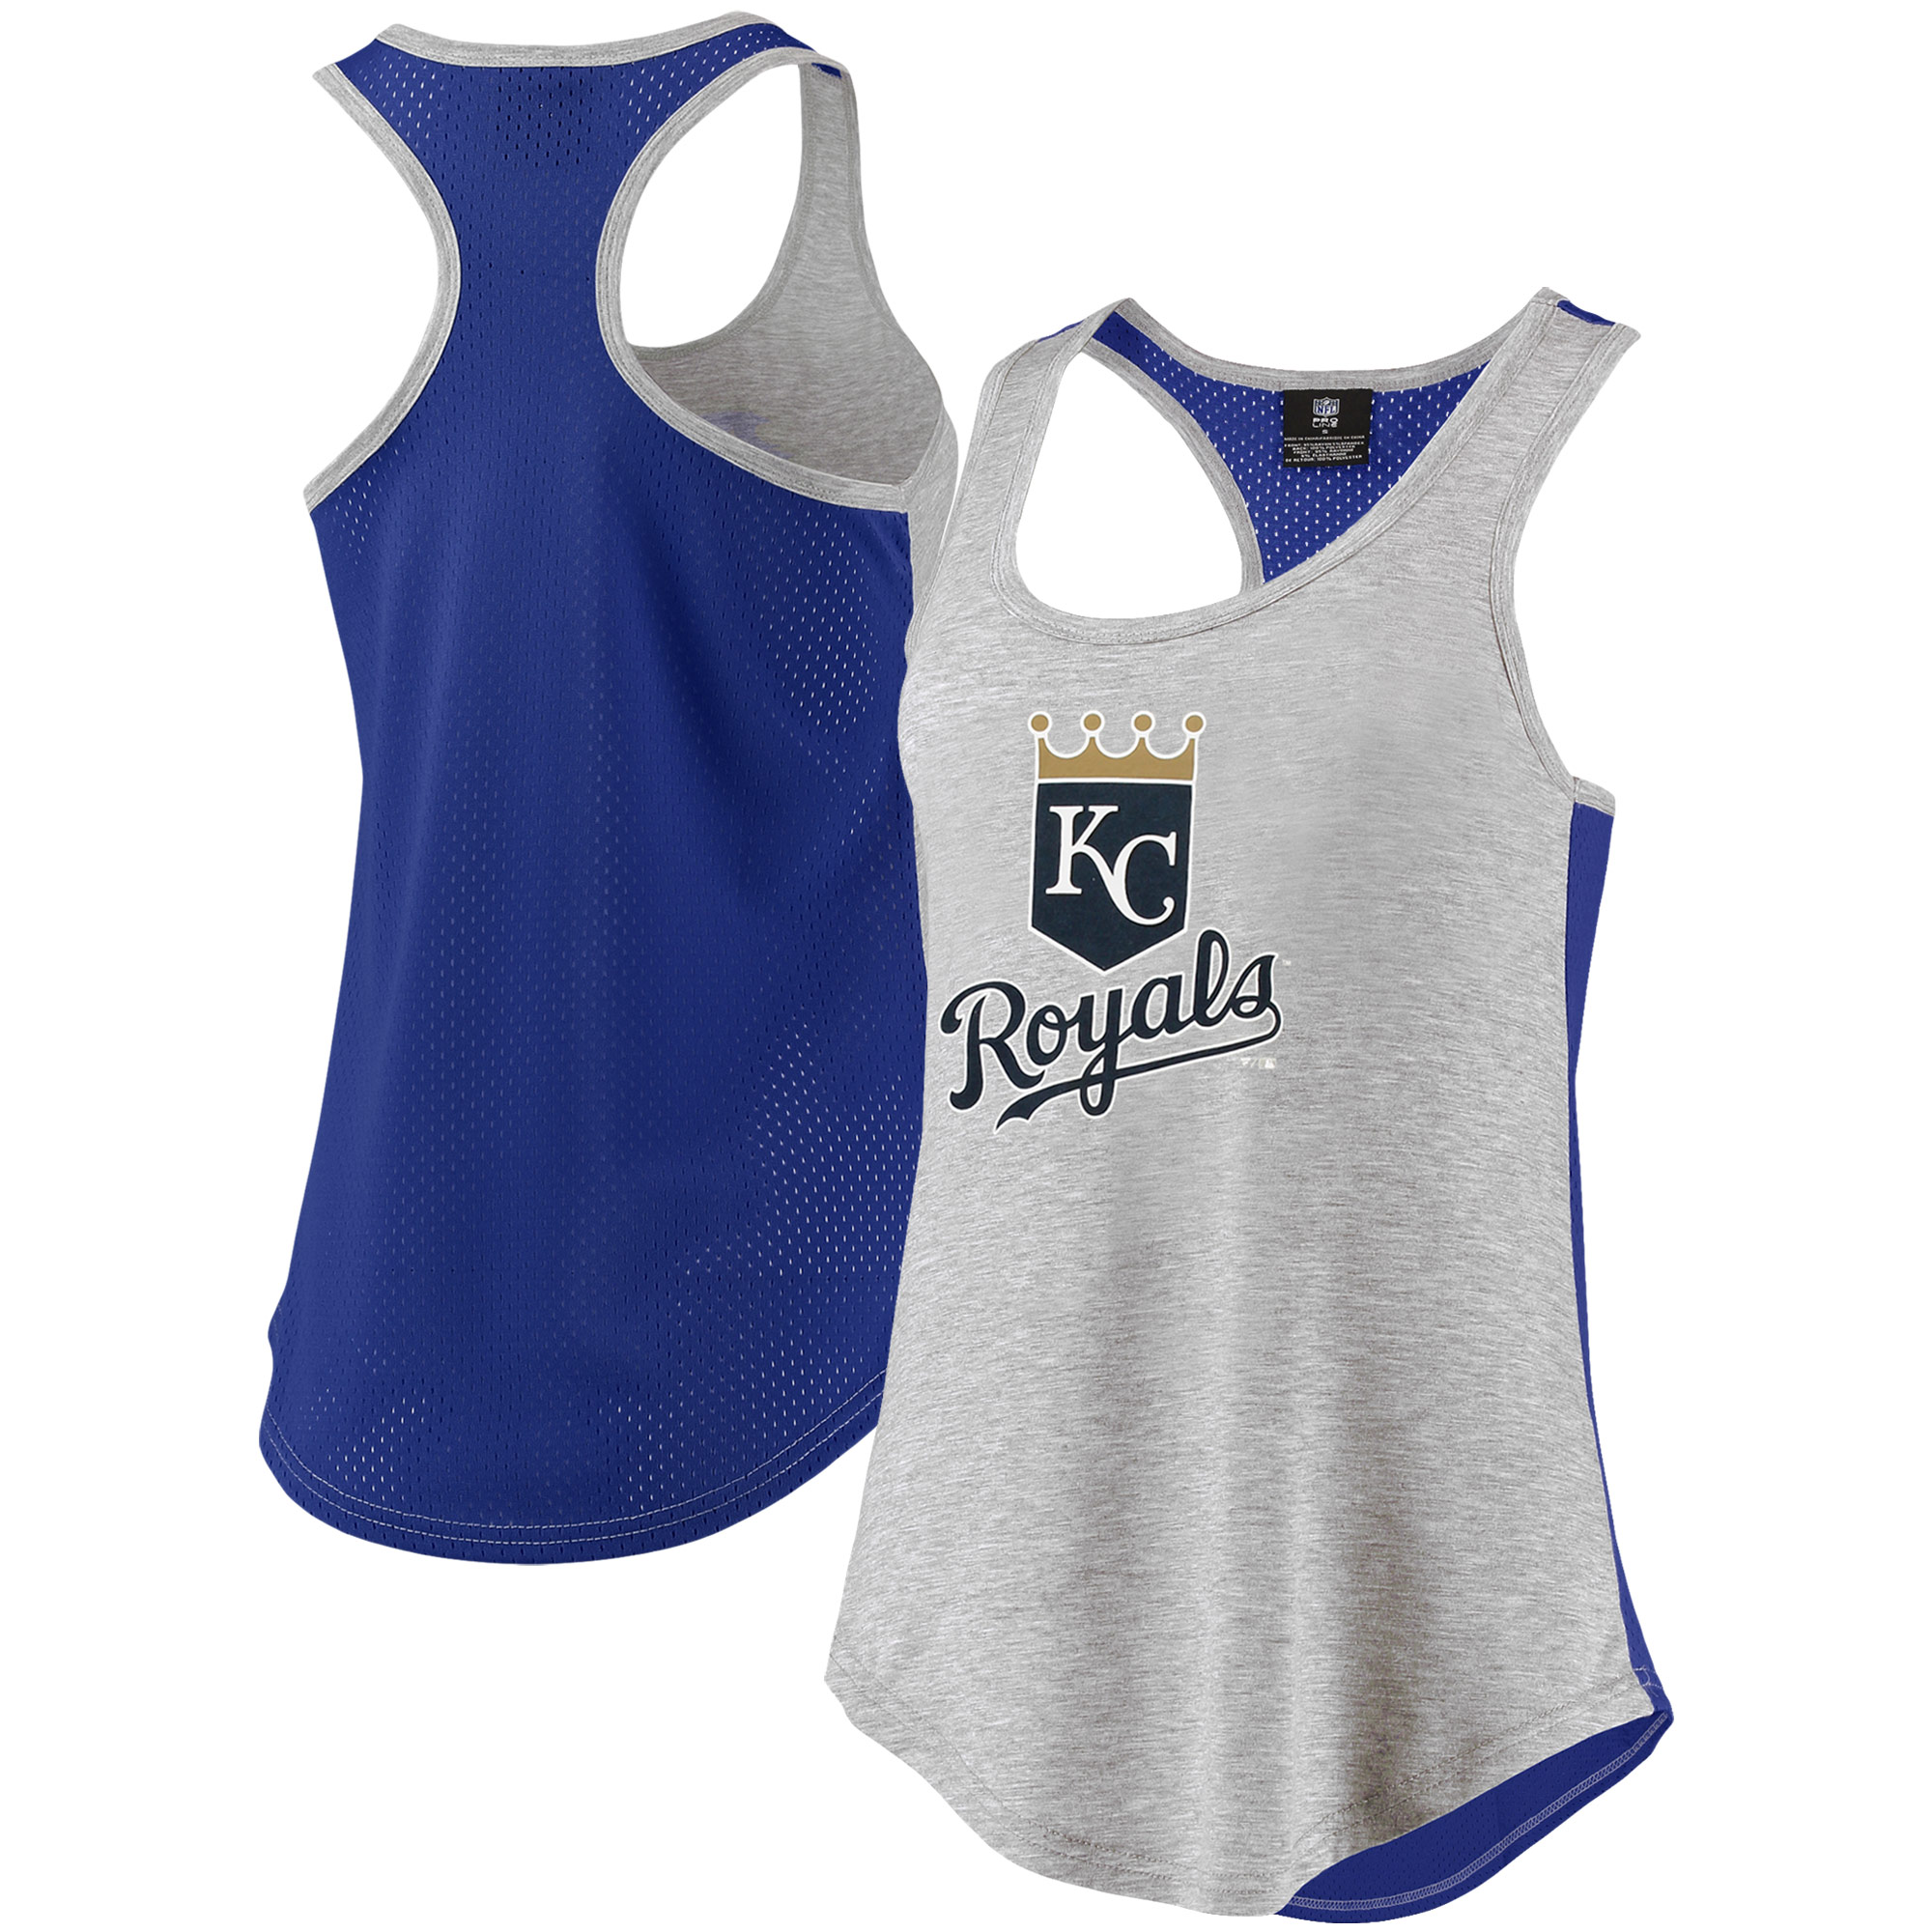 Kansas City Royals Fanatics Branded Women's Overtime Flow Out Tank Top - Heathered Gray/Royal